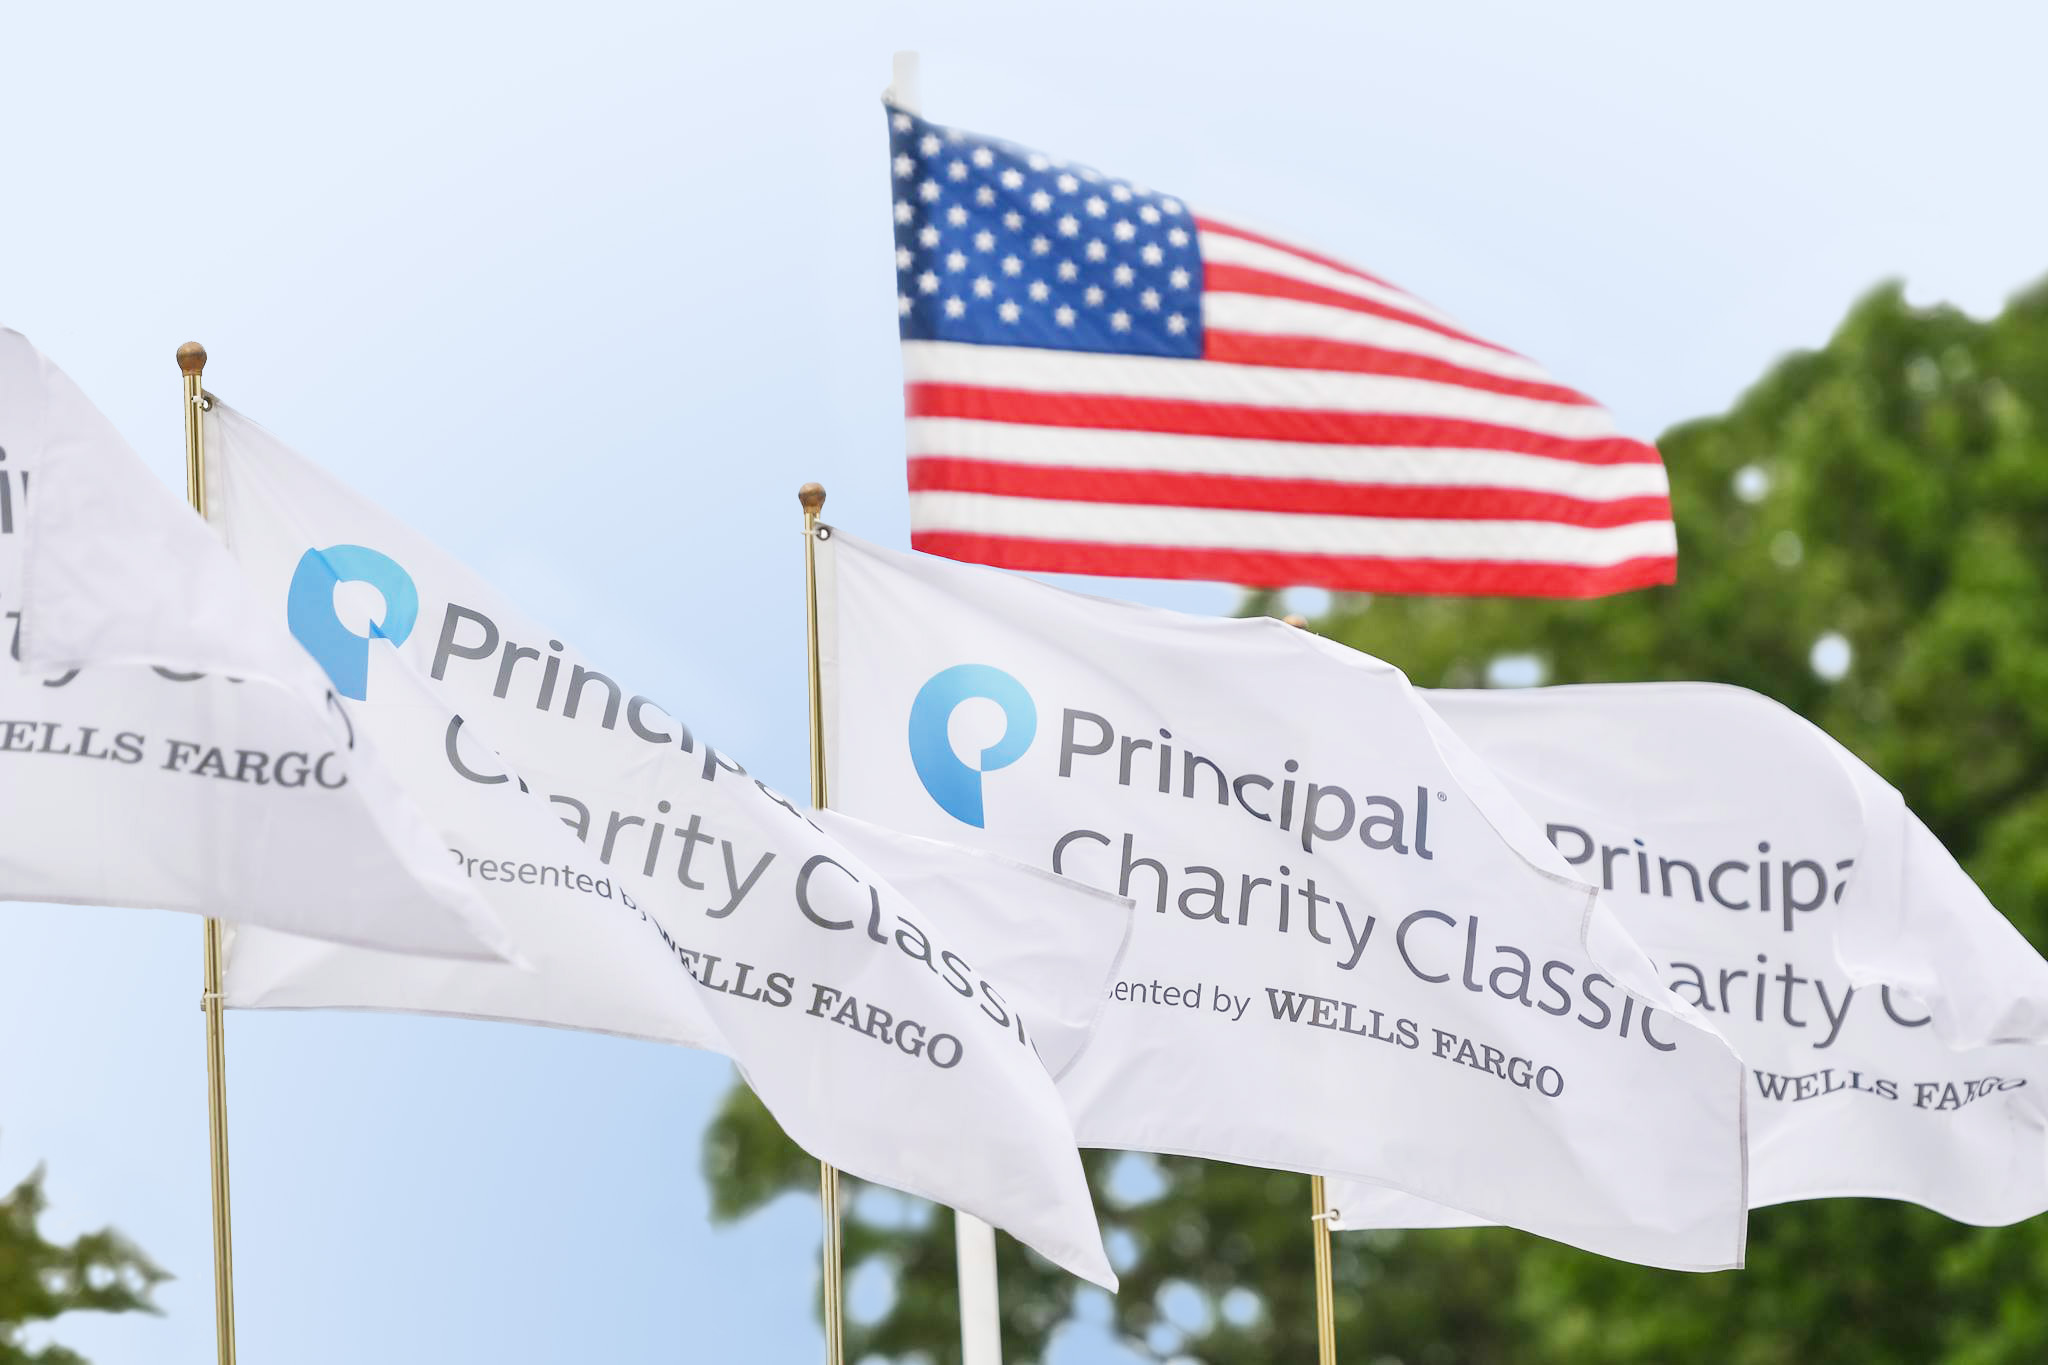 Principal Charity Classic Canceled For 2020. Children's charities still to receive significant support from the event.